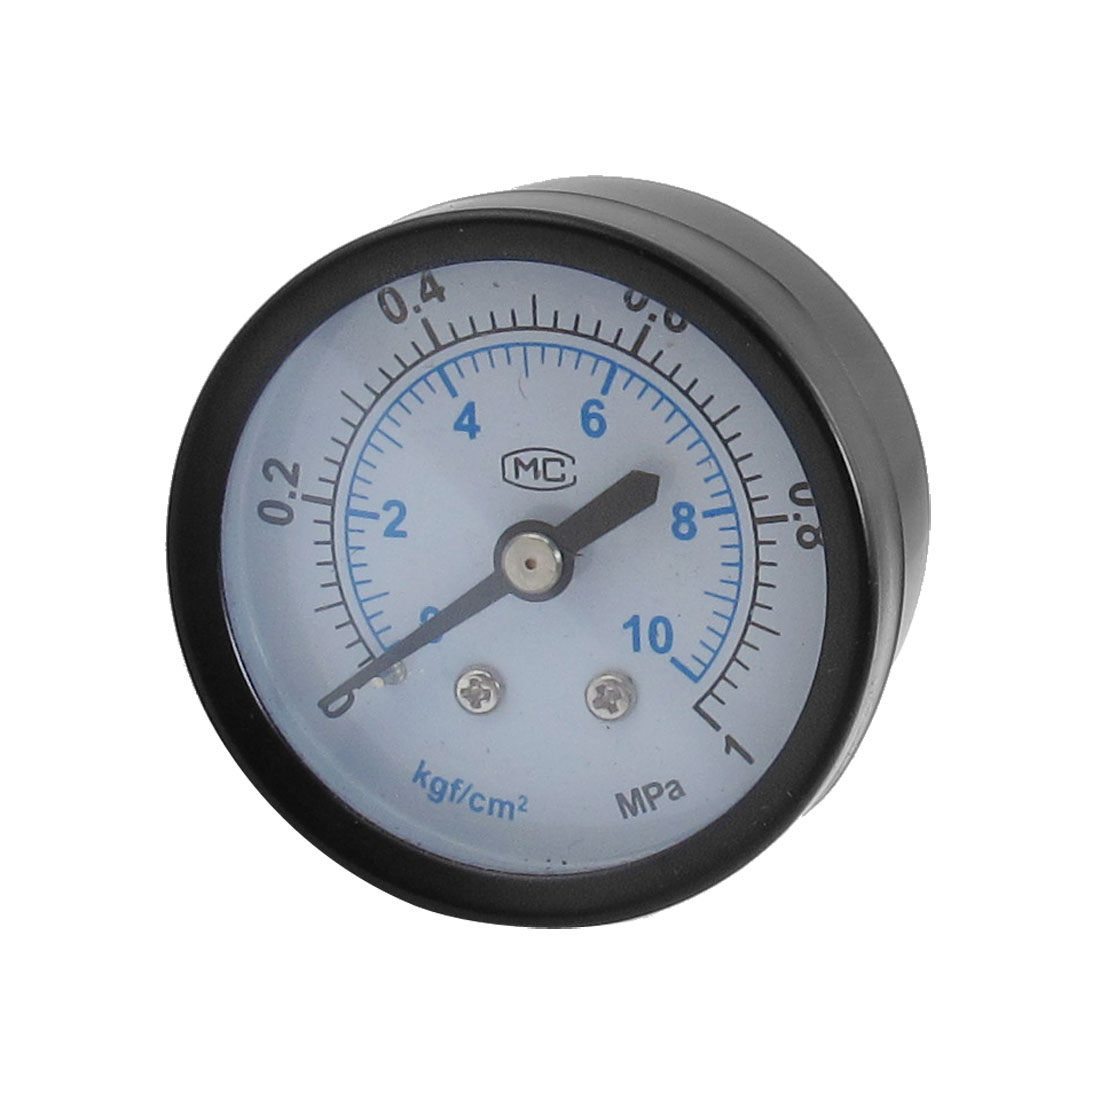 "0-1MPa 1/4"" PT Male Thread Black Metal Case Pneumatic Pressure Gauge"